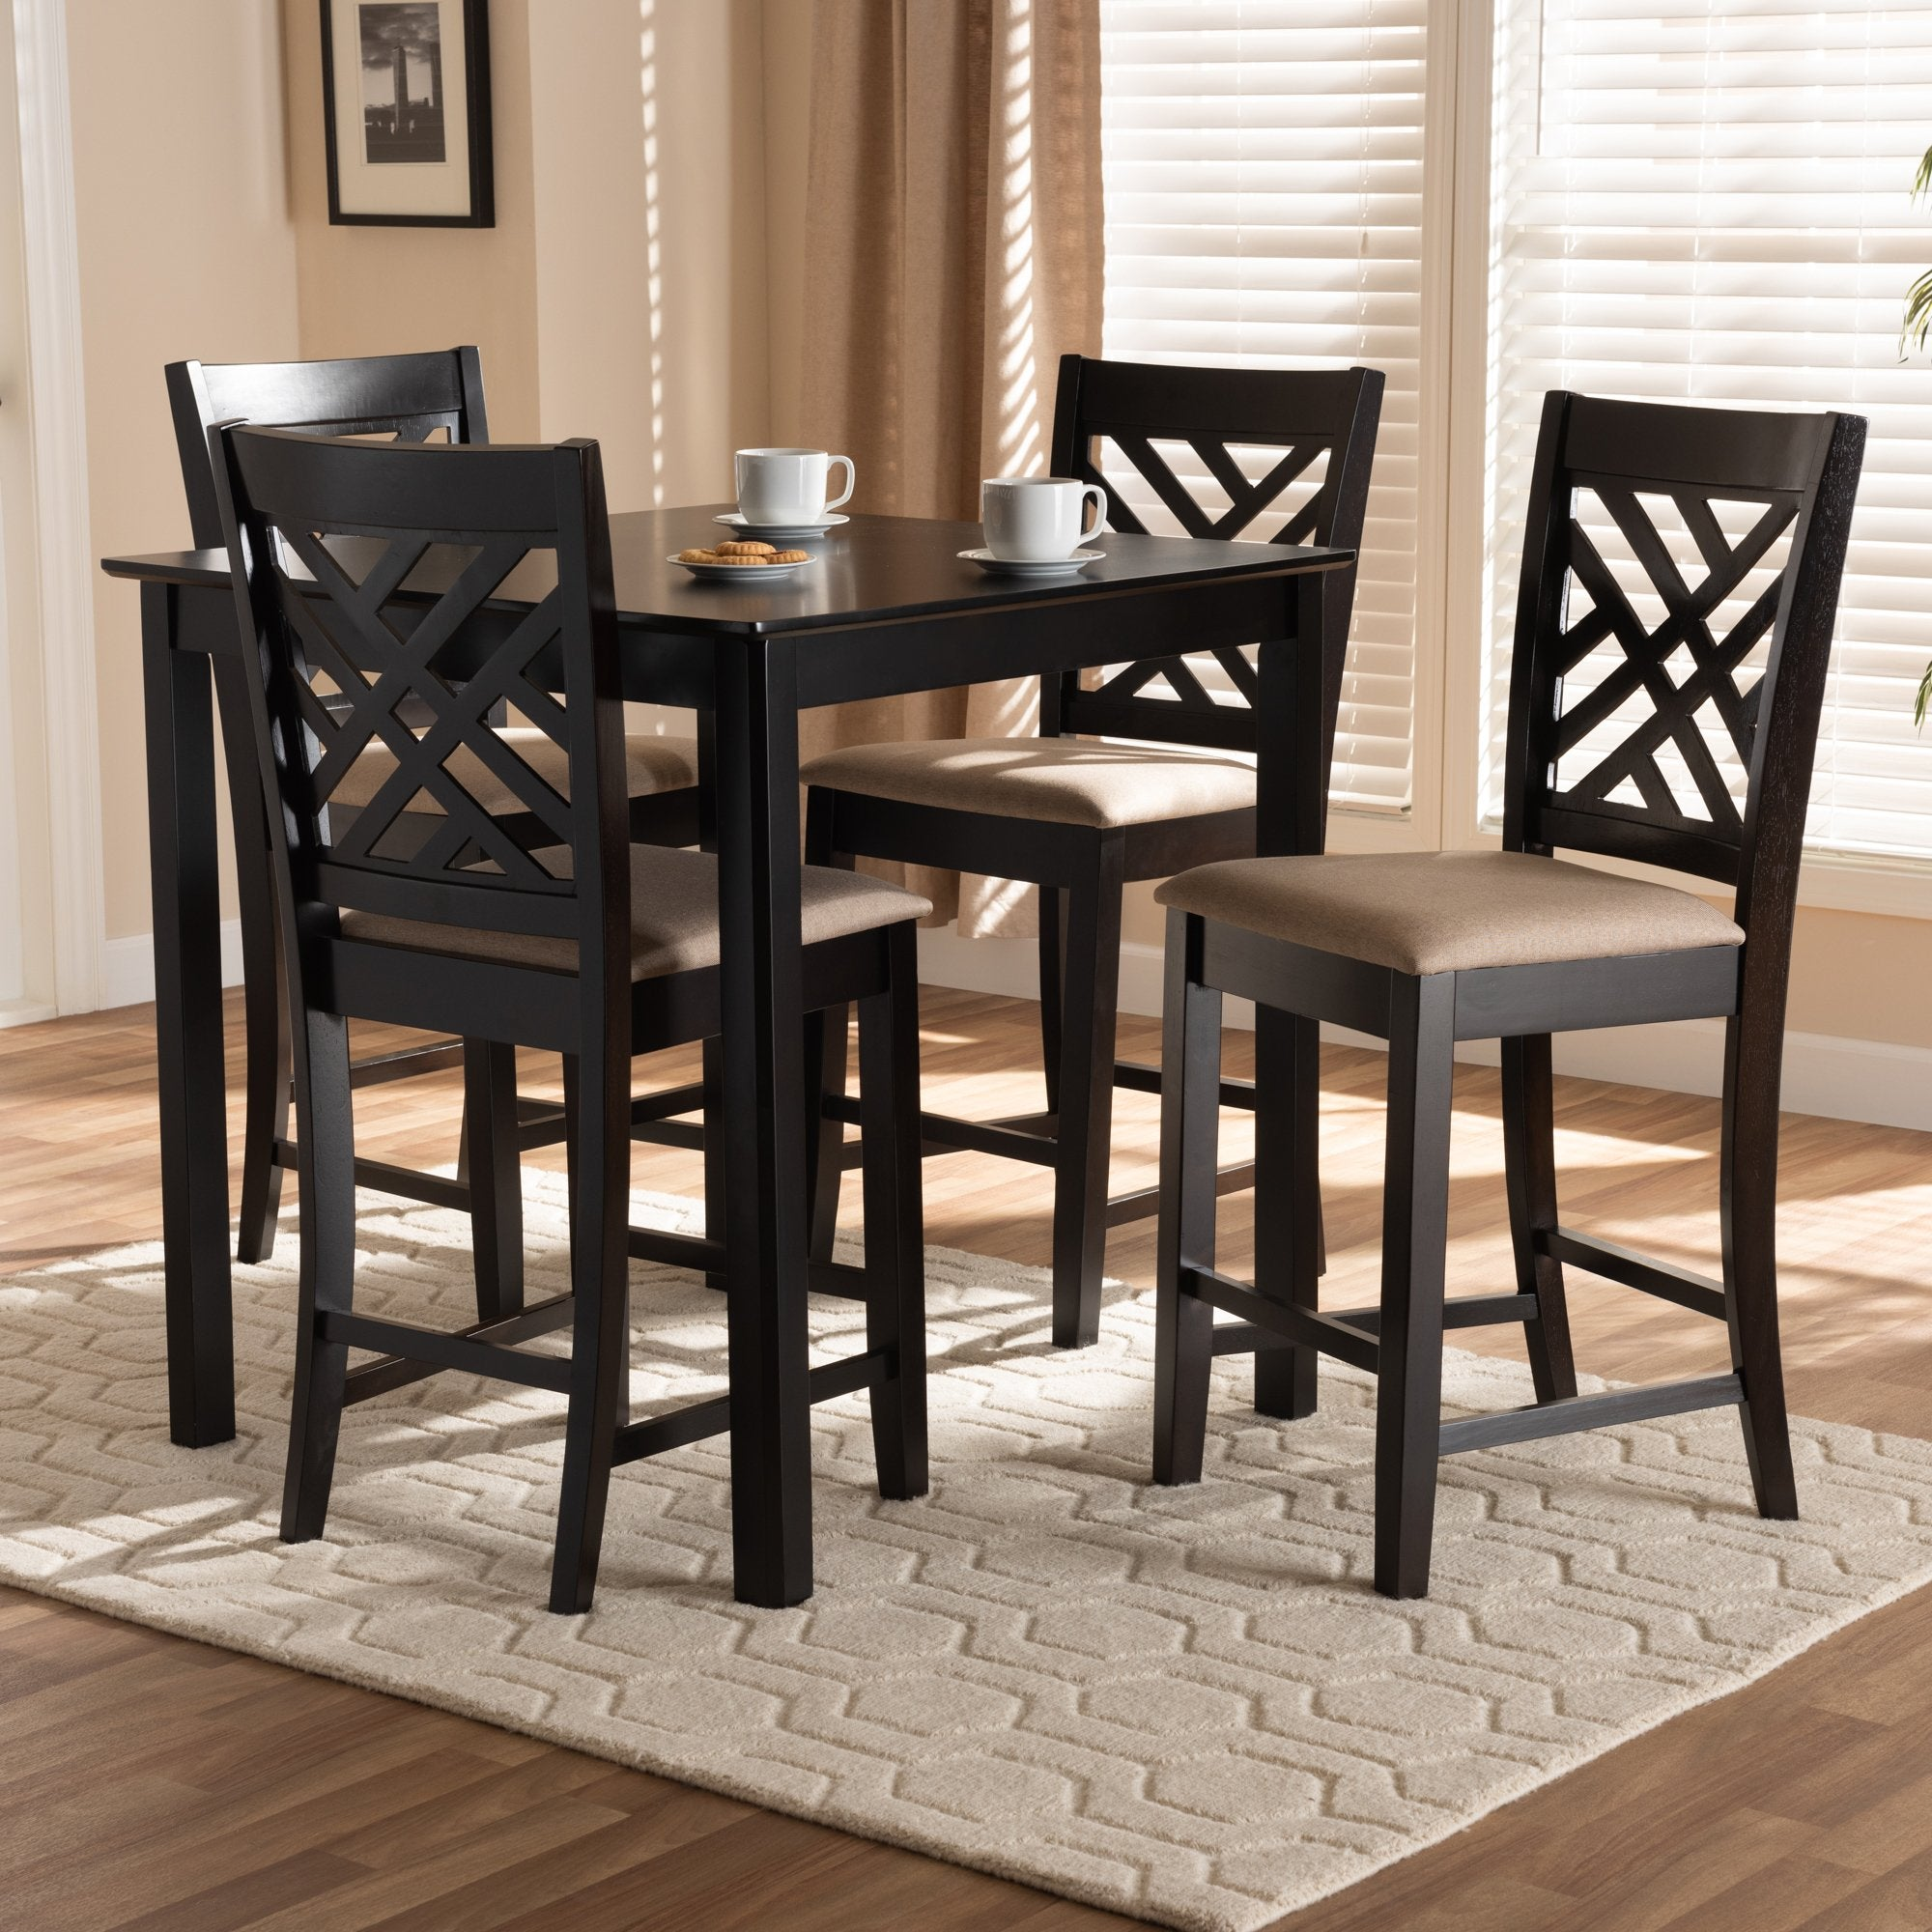 Cailyn Bar Table Set (5-Piece).